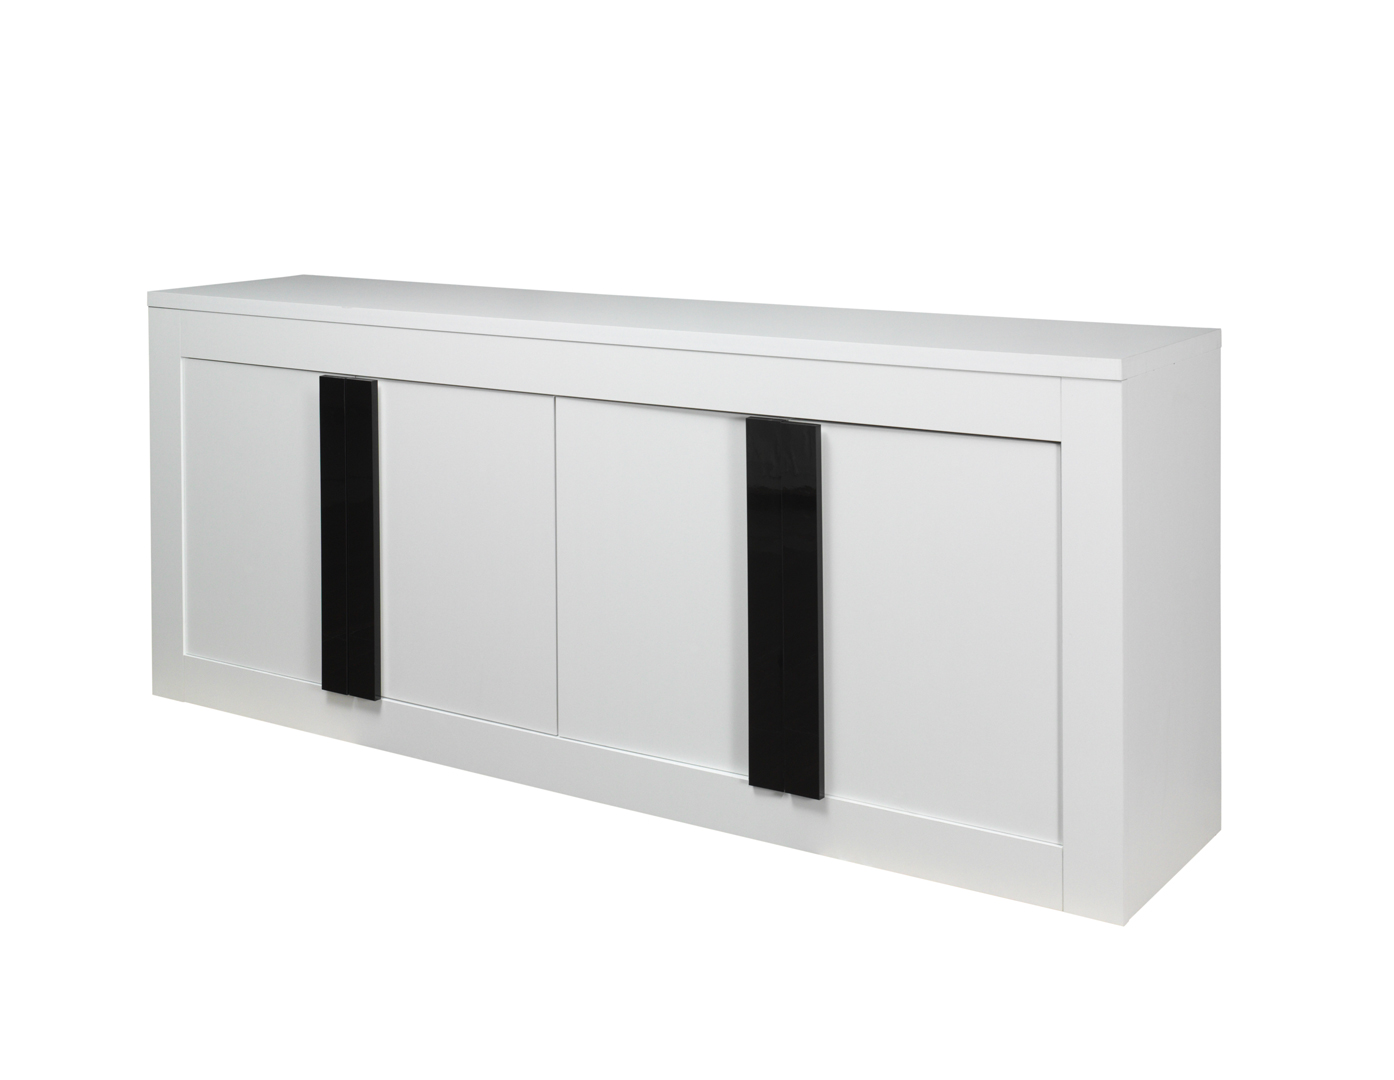 buffet bahut design 4 portes blanc mat noir brillant evane. Black Bedroom Furniture Sets. Home Design Ideas